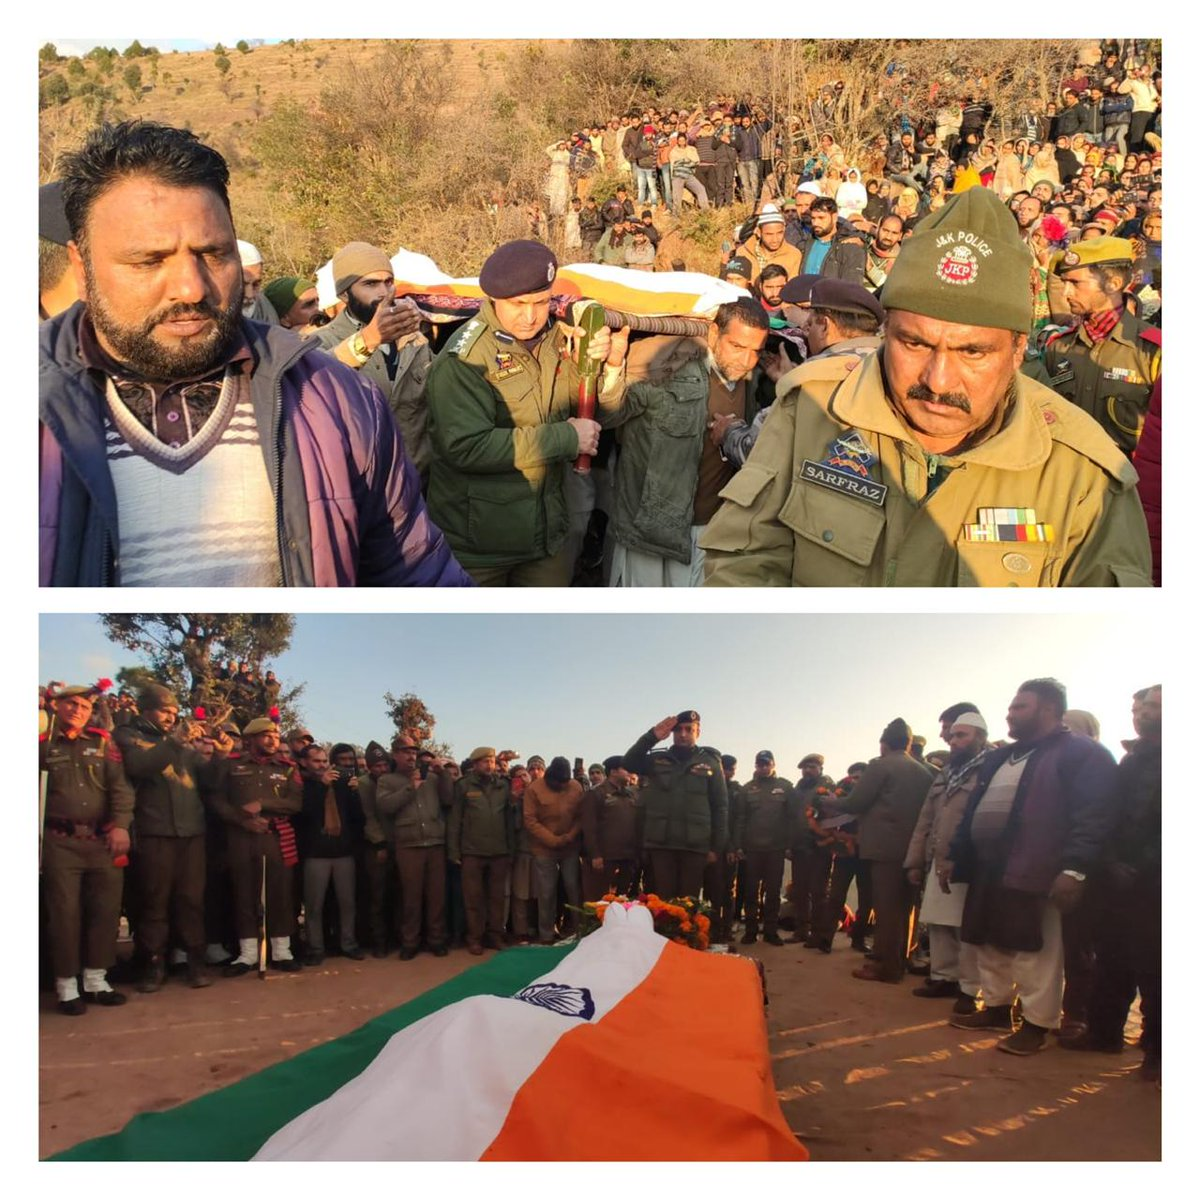 #Tributes paid to #Martyr cop in Hayatpura Manjakote #RajouriJ&K Police & Civil administration & other security forces today paid rich professional #tributes to the #Martyr SPO who laid down his life while fighting terorists in Awantipora area of Kashmir on Tuesday.